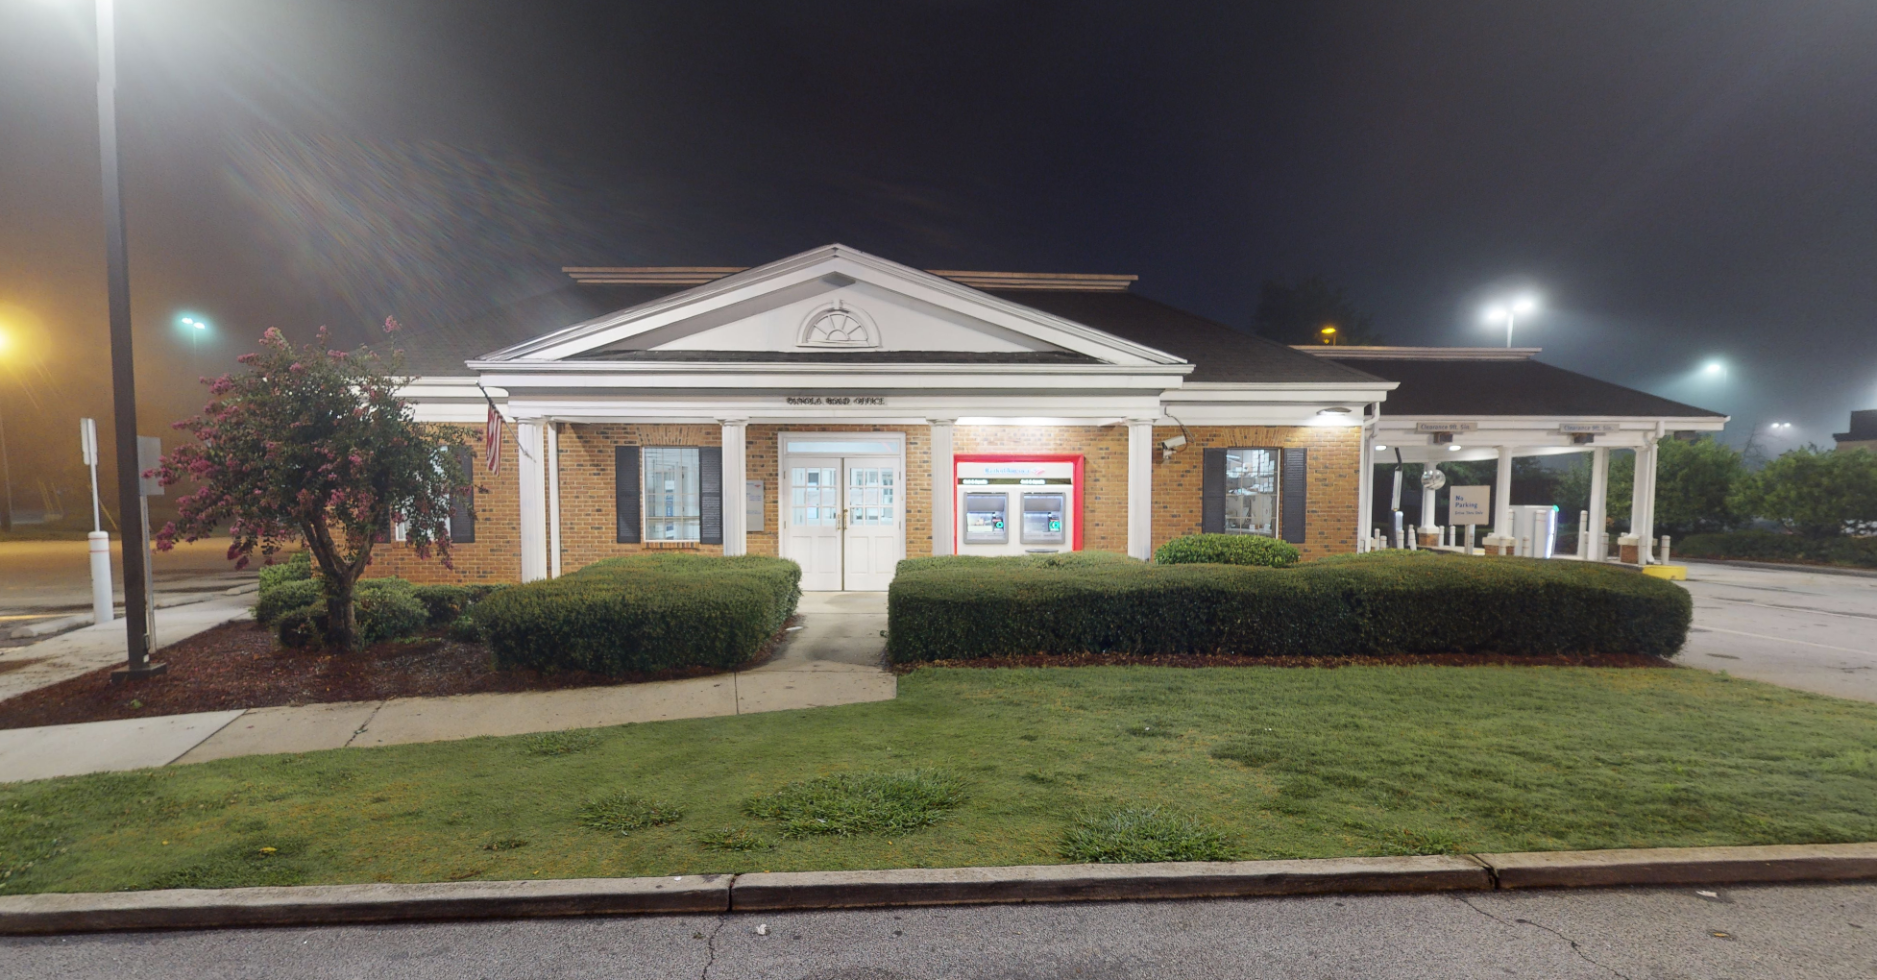 Bank of America financial center with drive-thru ATM and teller   6138 Covington Hwy, Lithonia, GA 30058